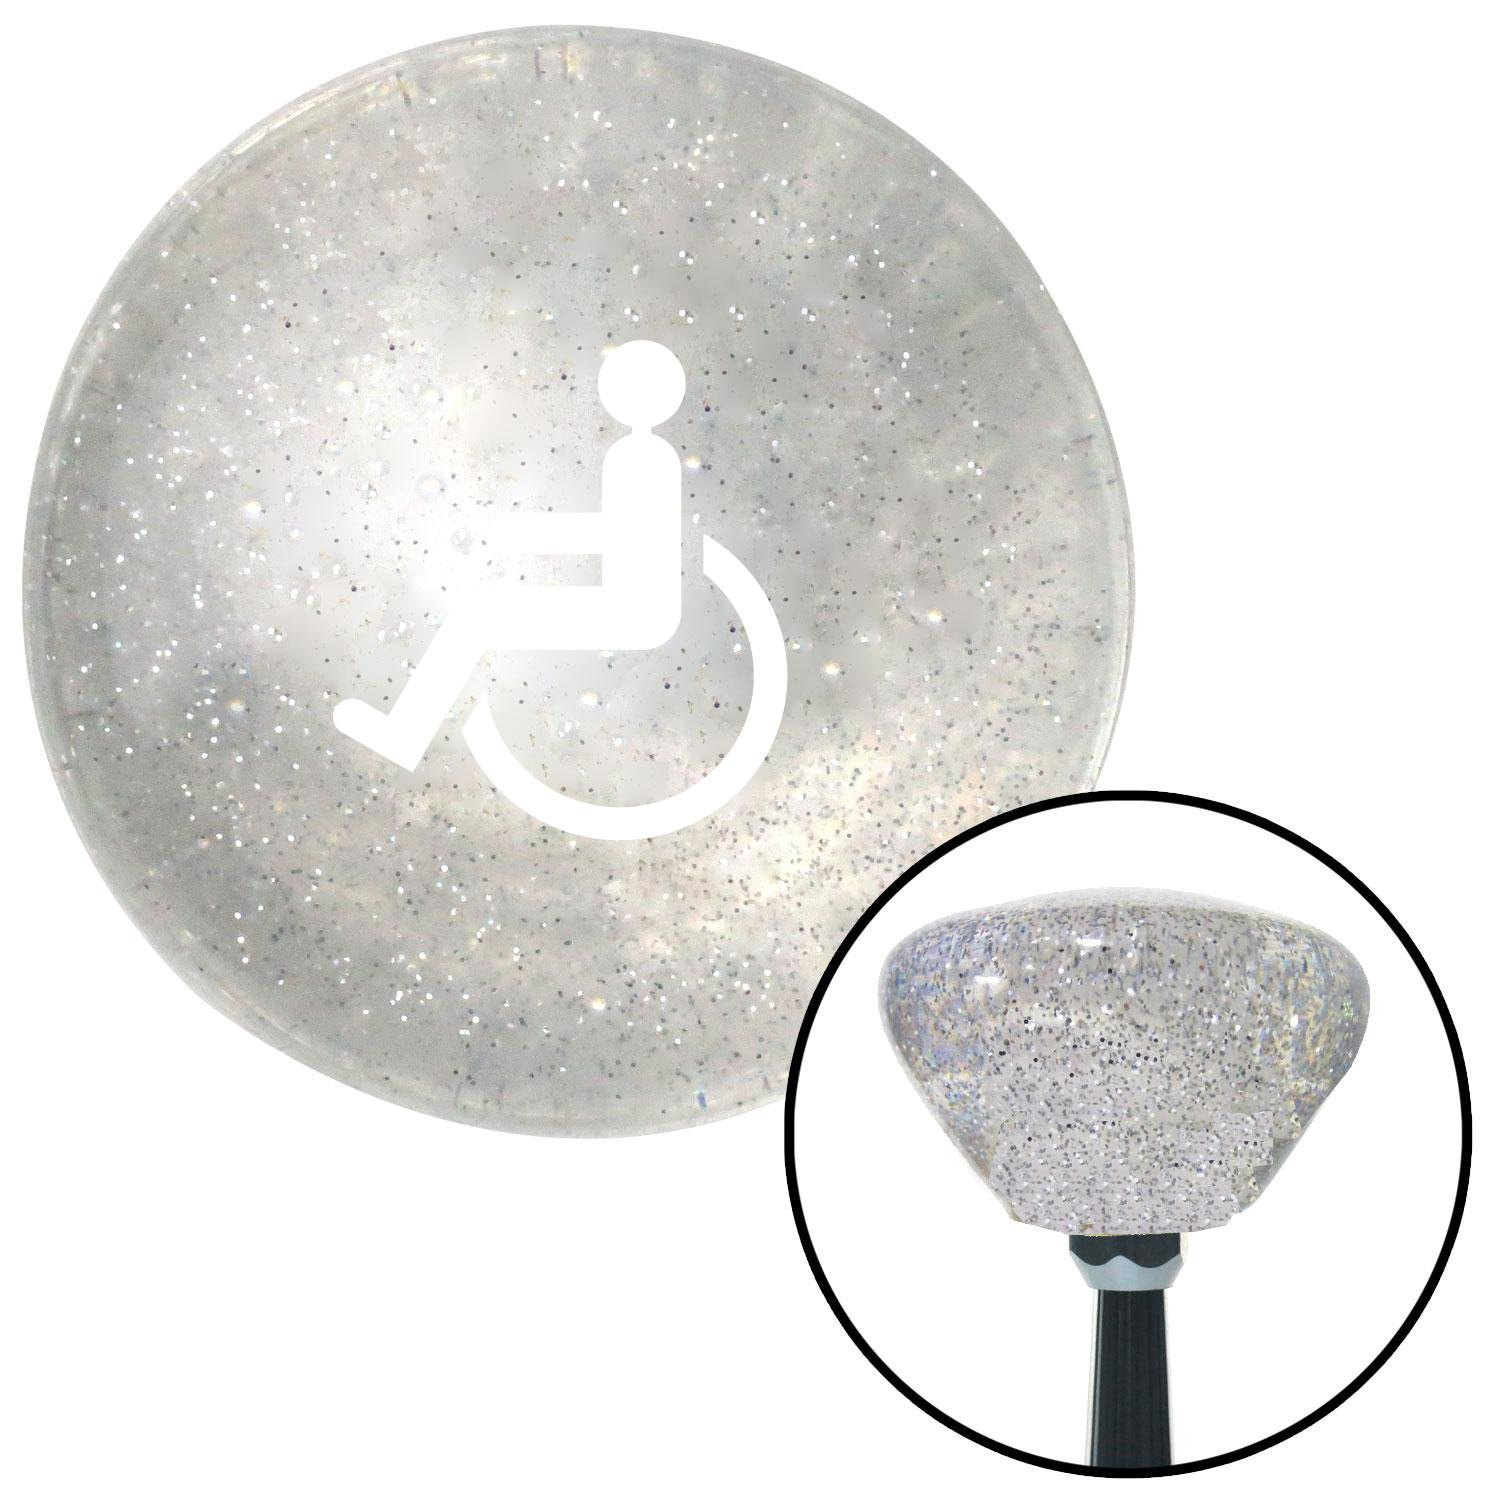 White Wheelchair American Shifter 163799 Clear Retro Metal Flake Shift Knob with M16 x 1.5 Insert